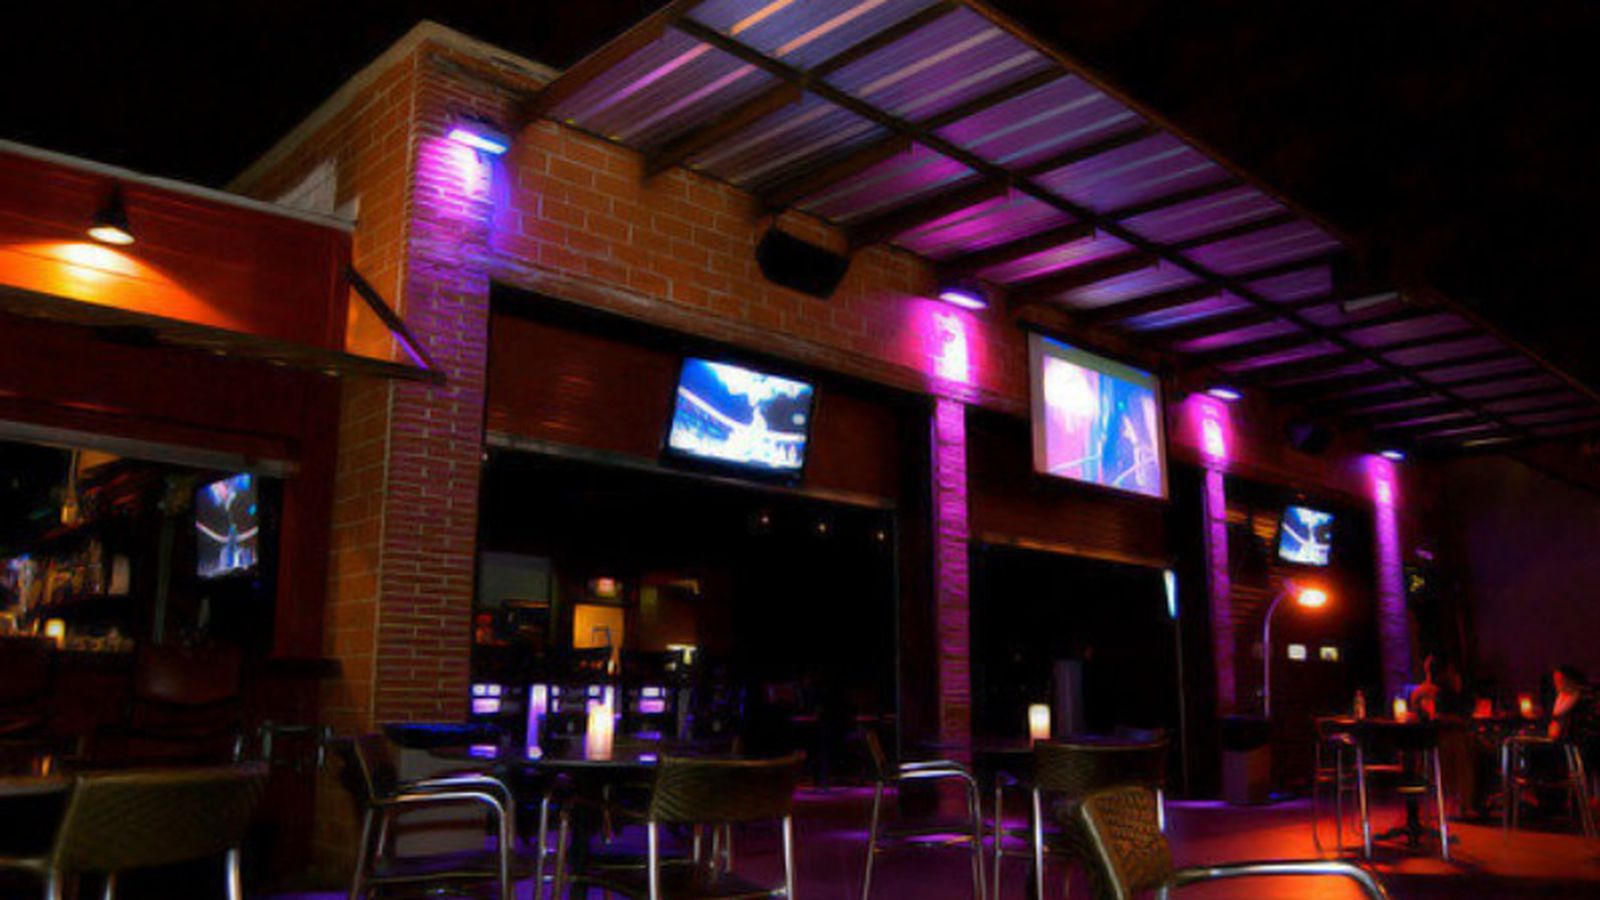 Lincoln Bar Kitchen And Mission Athletic Club Bring More Nightlife Options To Washington Ave